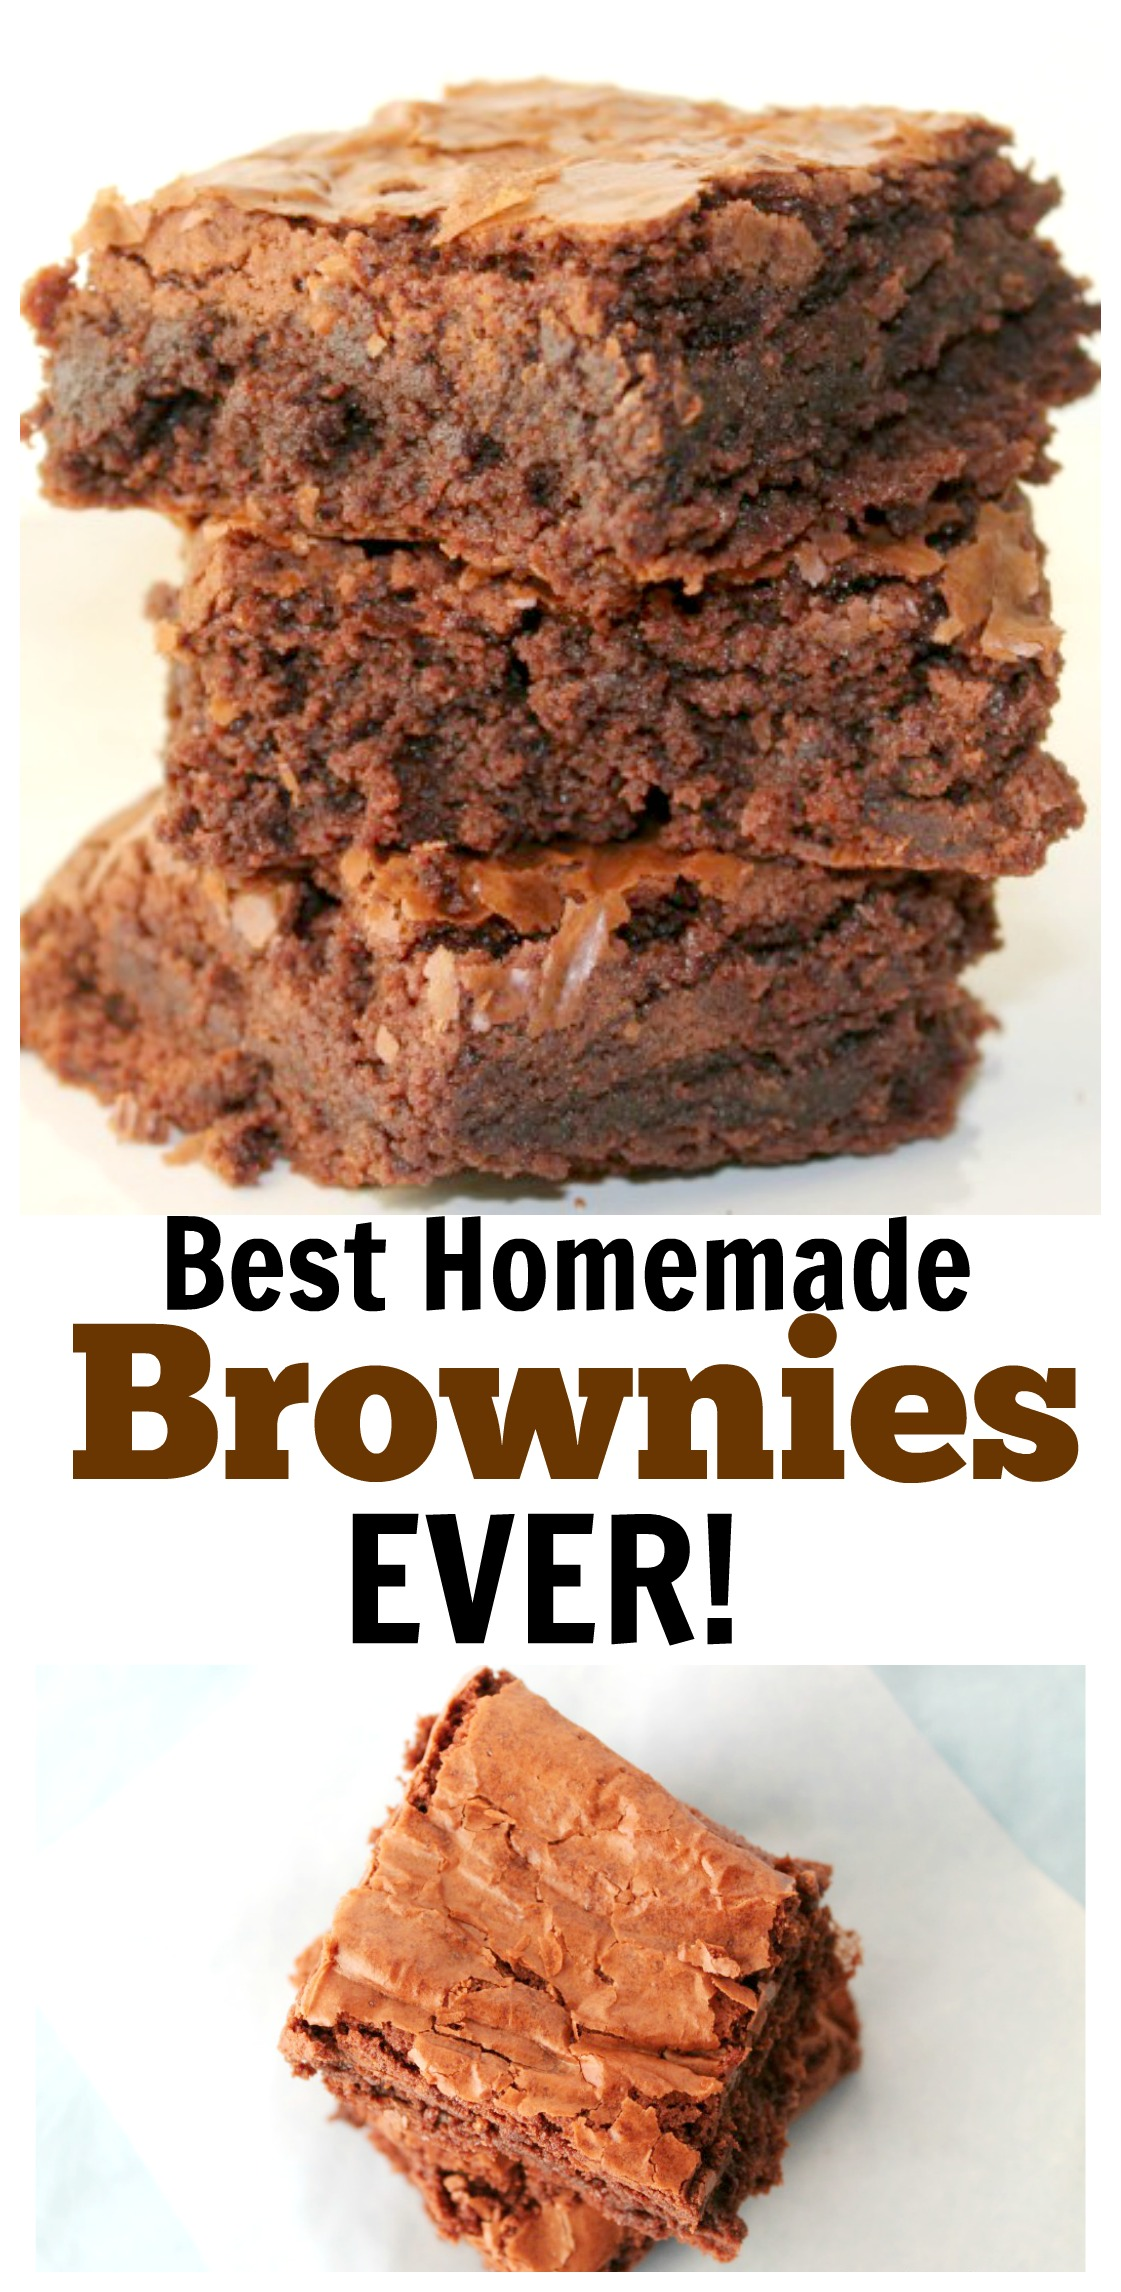 Best Homemade Brownies Ever